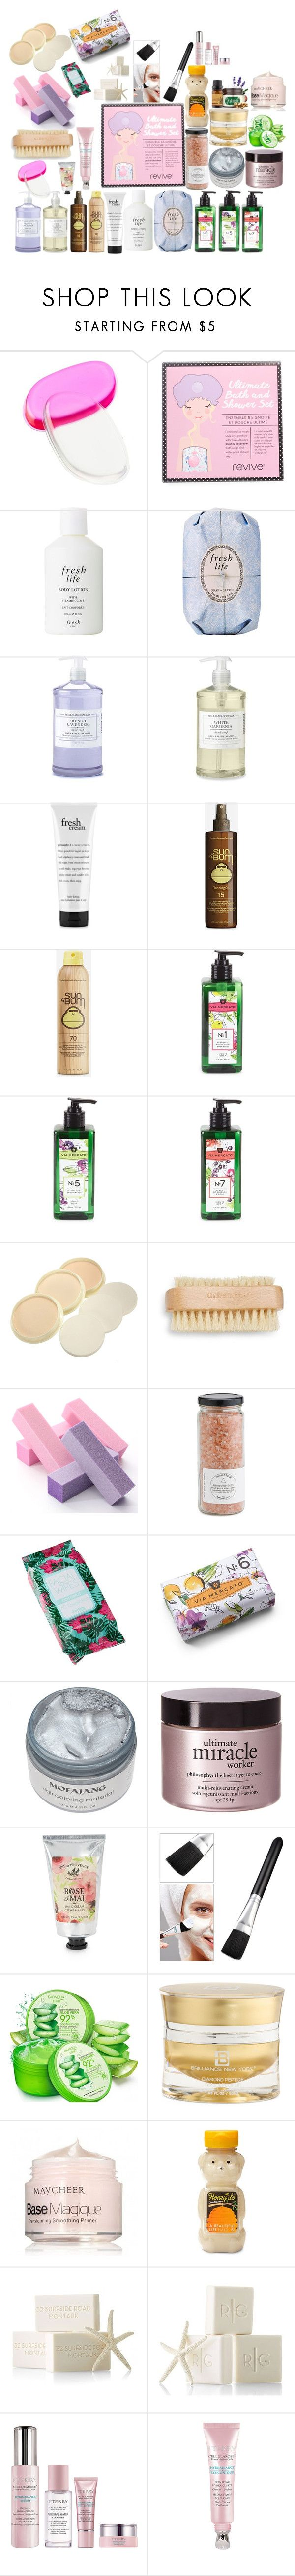 """""""Beauty In ur Bath"""" by daquashiasalaam ❤ liked on Polyvore featuring beauty, Charlotte Russe, Fresh, Williams-Sonoma, philosophy, Sun Bum, Pré de Provence, Urban Spa, Forever 21 and Mark & Graham"""